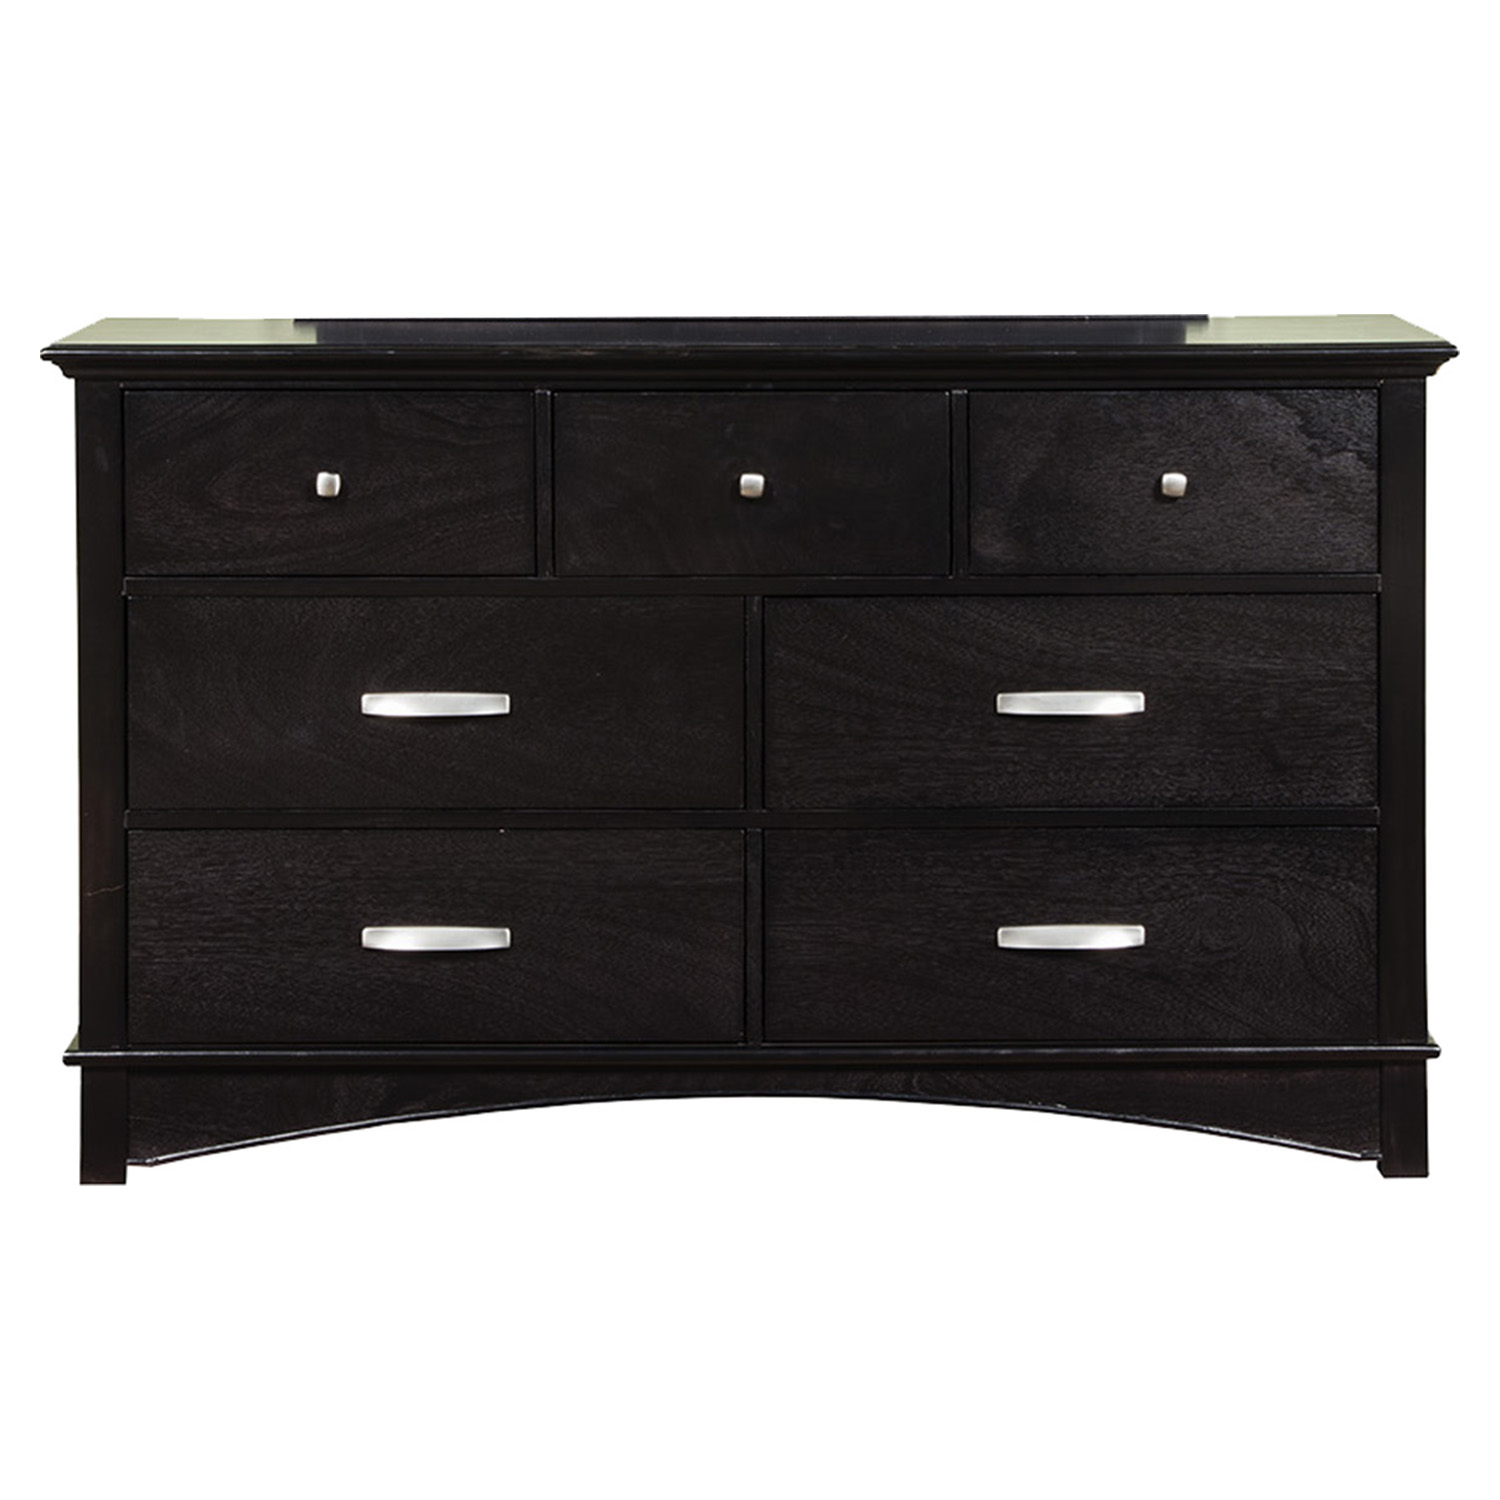 Madison 7-Drawer Dresser - Dark Espresso